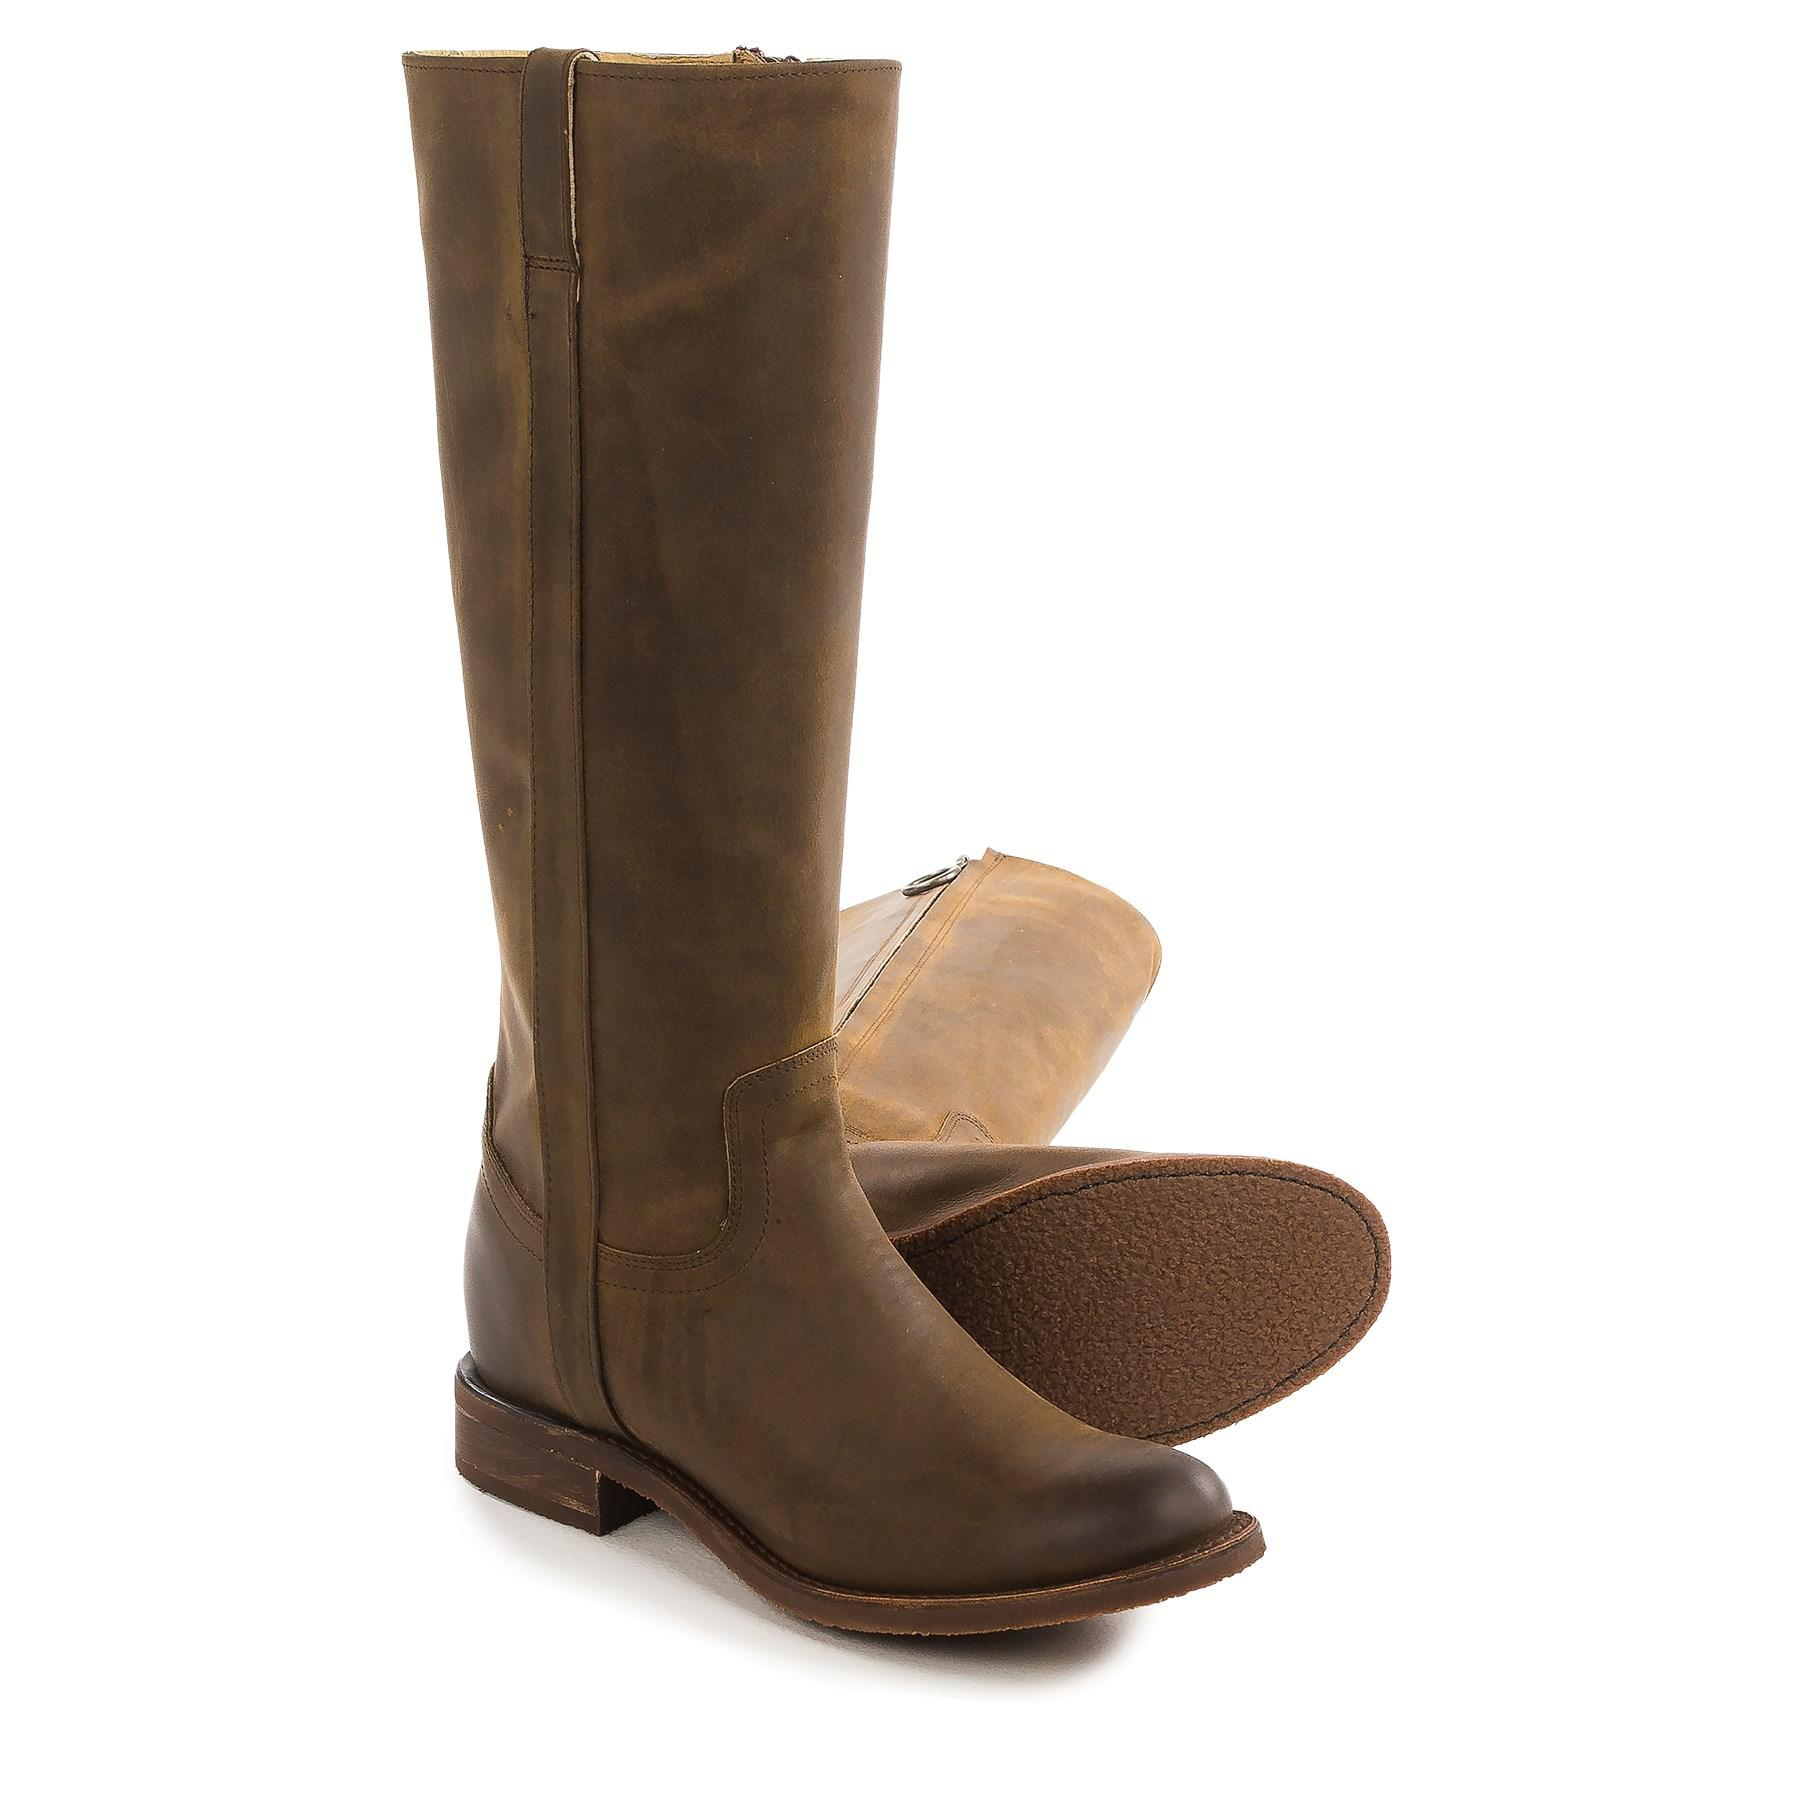 64ae472024ffe Lyst - Justin Boots Bay Apache Fashion Riding Boots in Brown